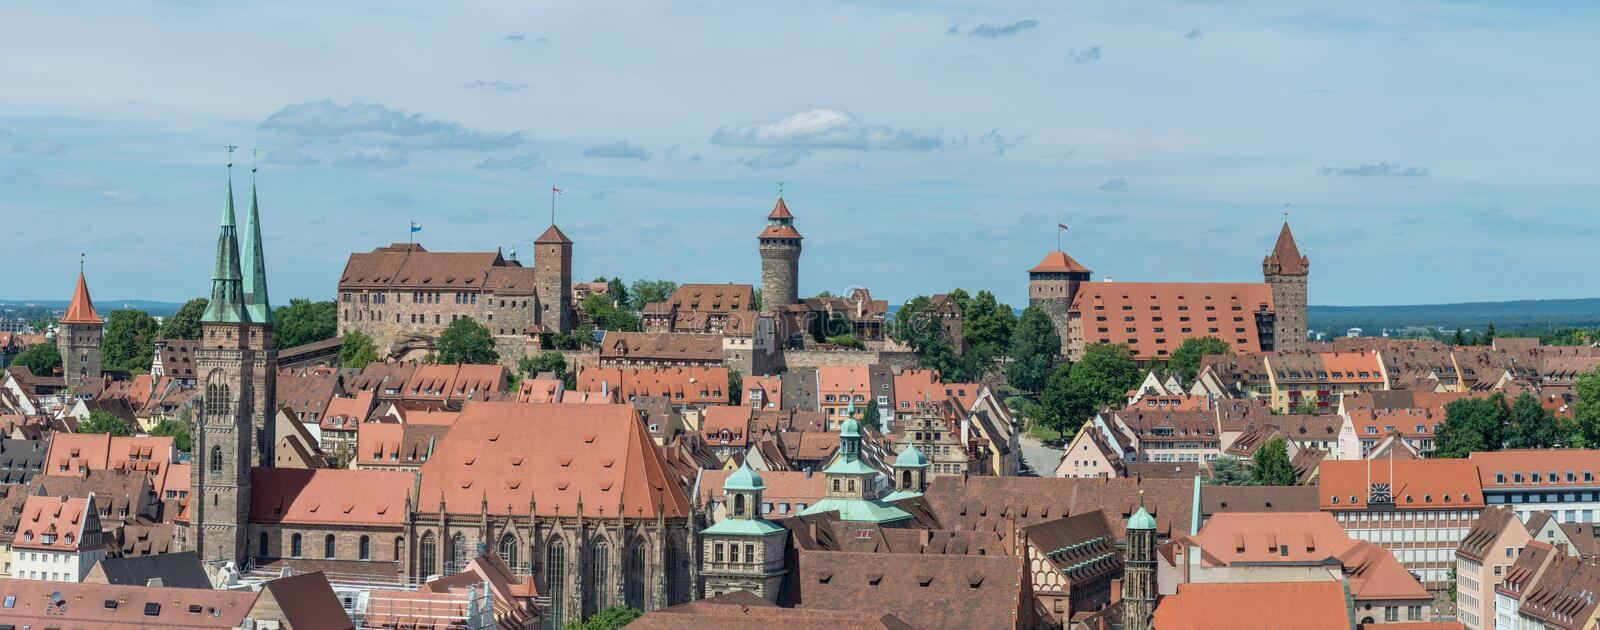 Panorama of the castle of Nuremberg and Sebaldus church on a sun royalty free stock photos